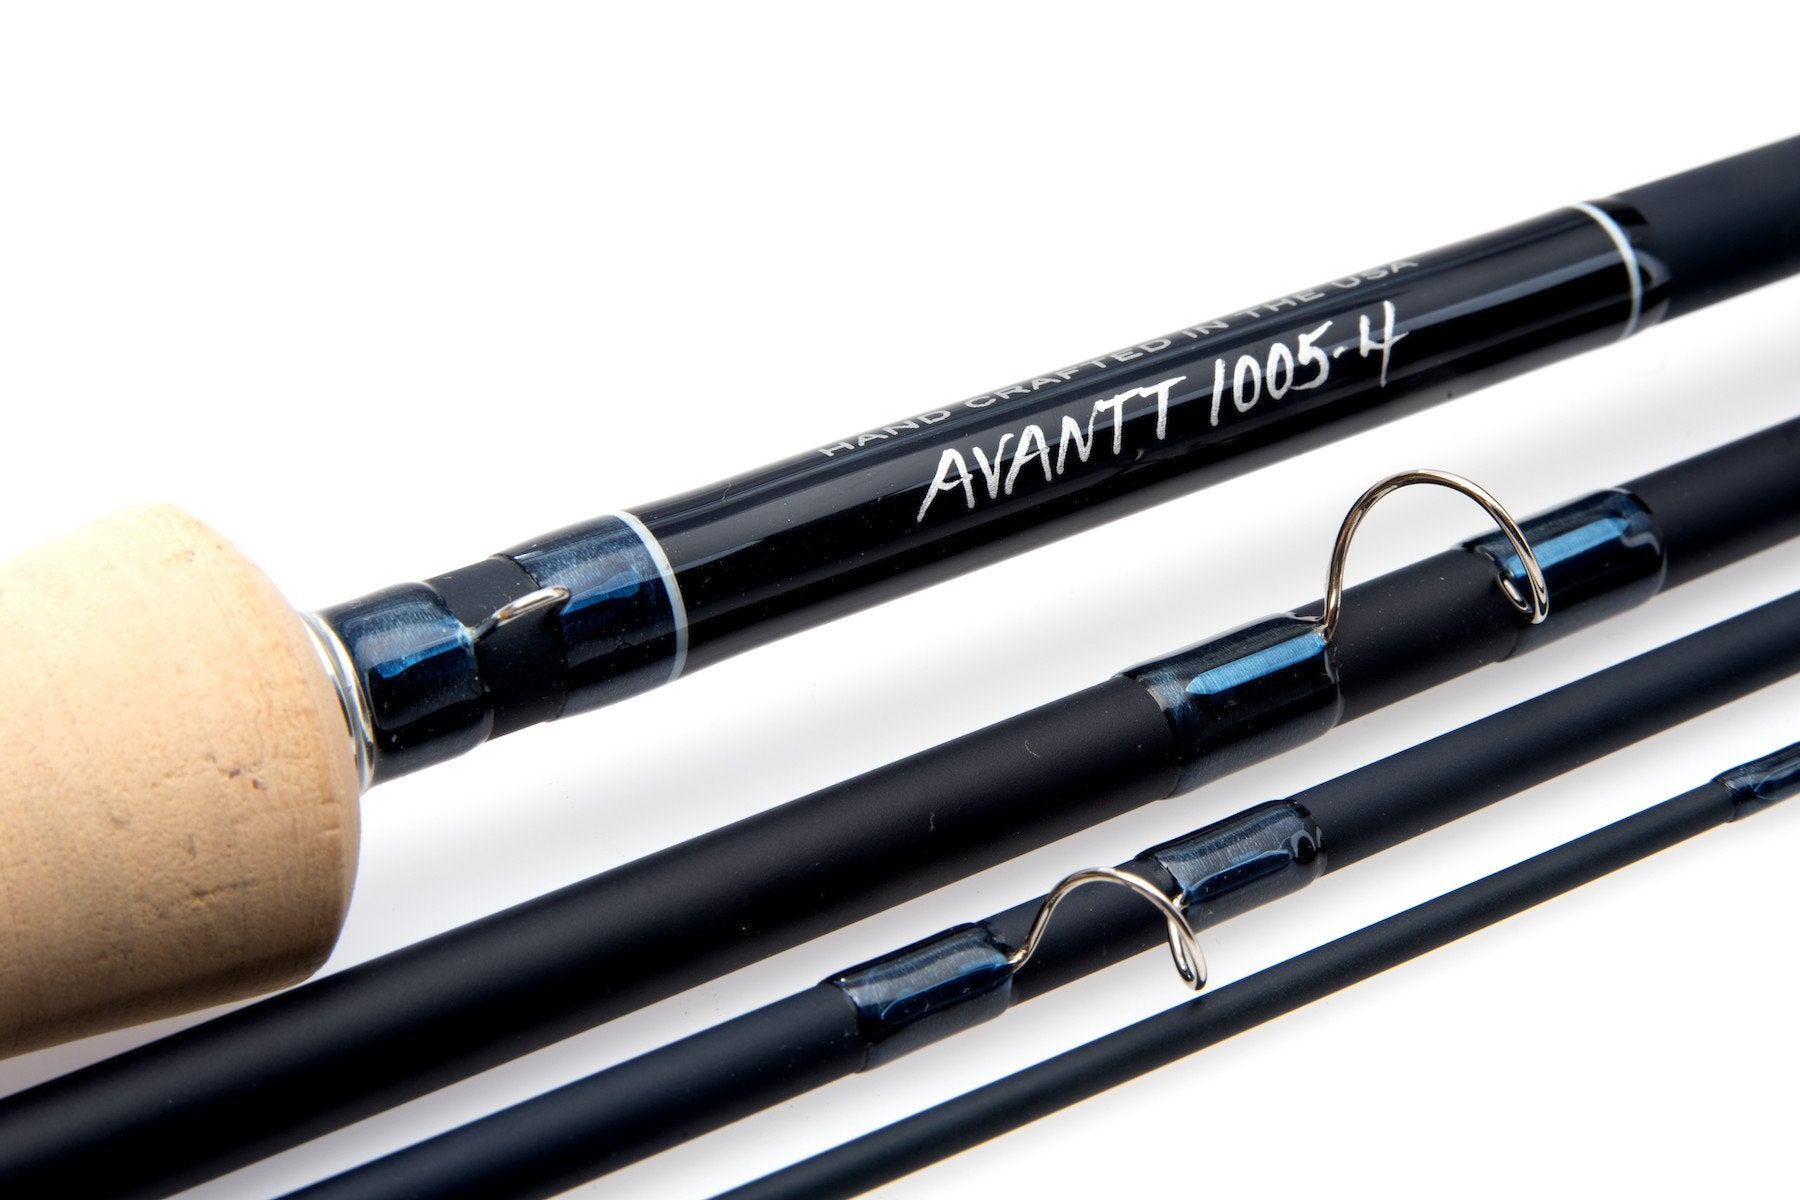 Thomas and Thomas Avantt Fly Rod